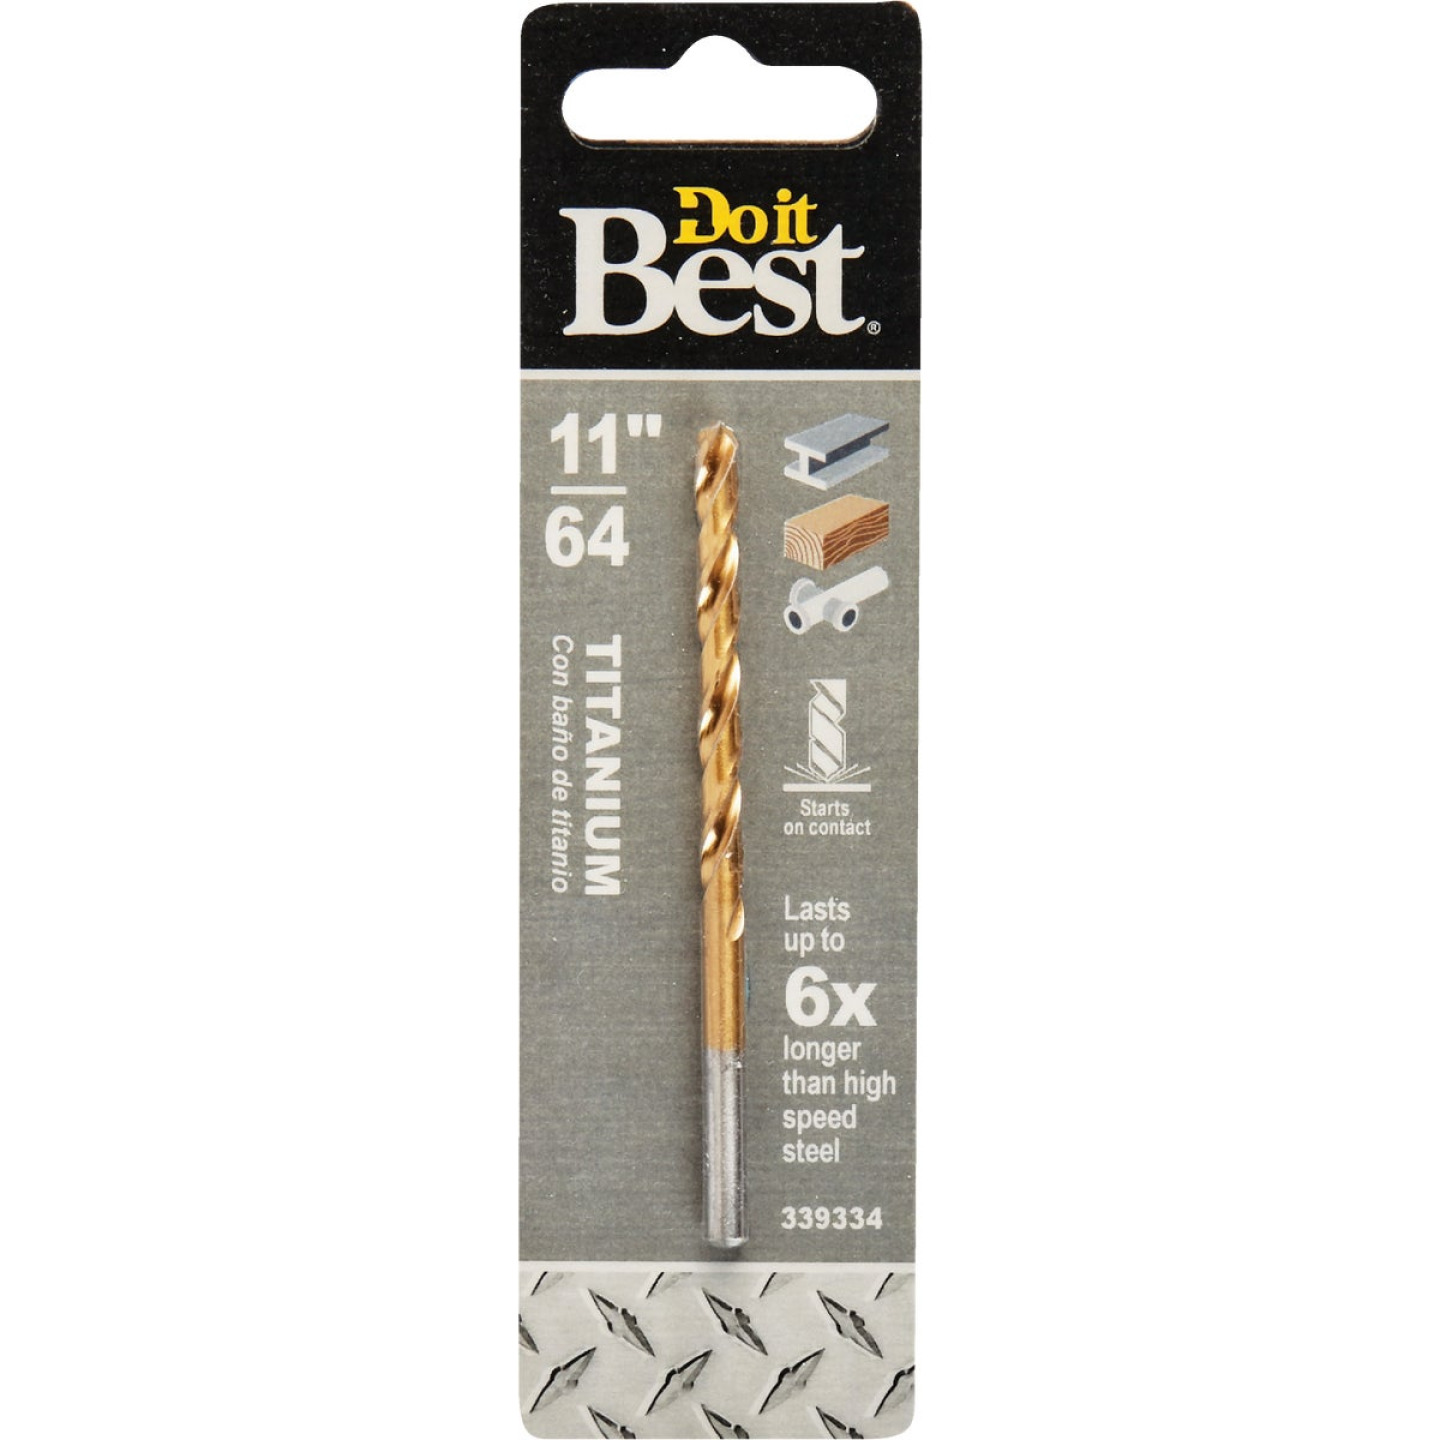 Do it Best 11/64 In. Titanium Drill Bit Image 1